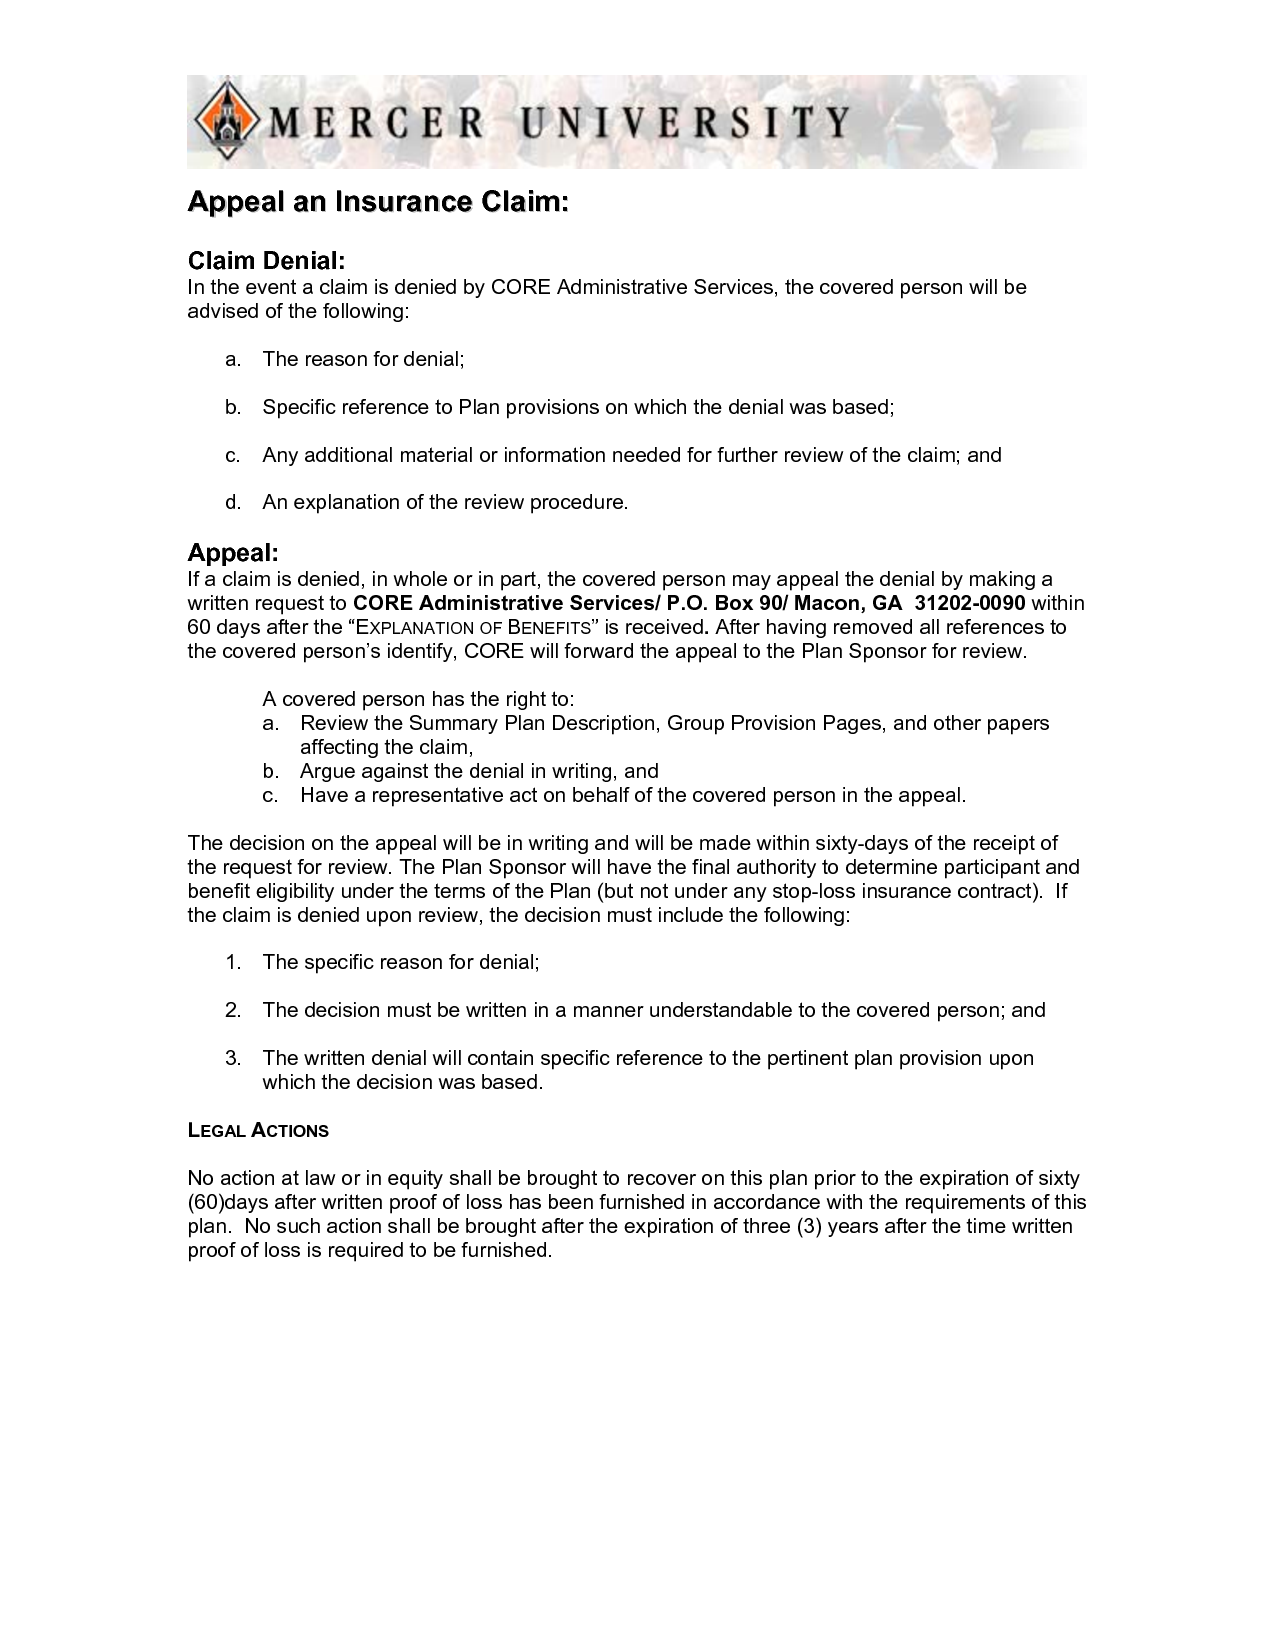 appeal letter sample medical claim and insurance denial form template